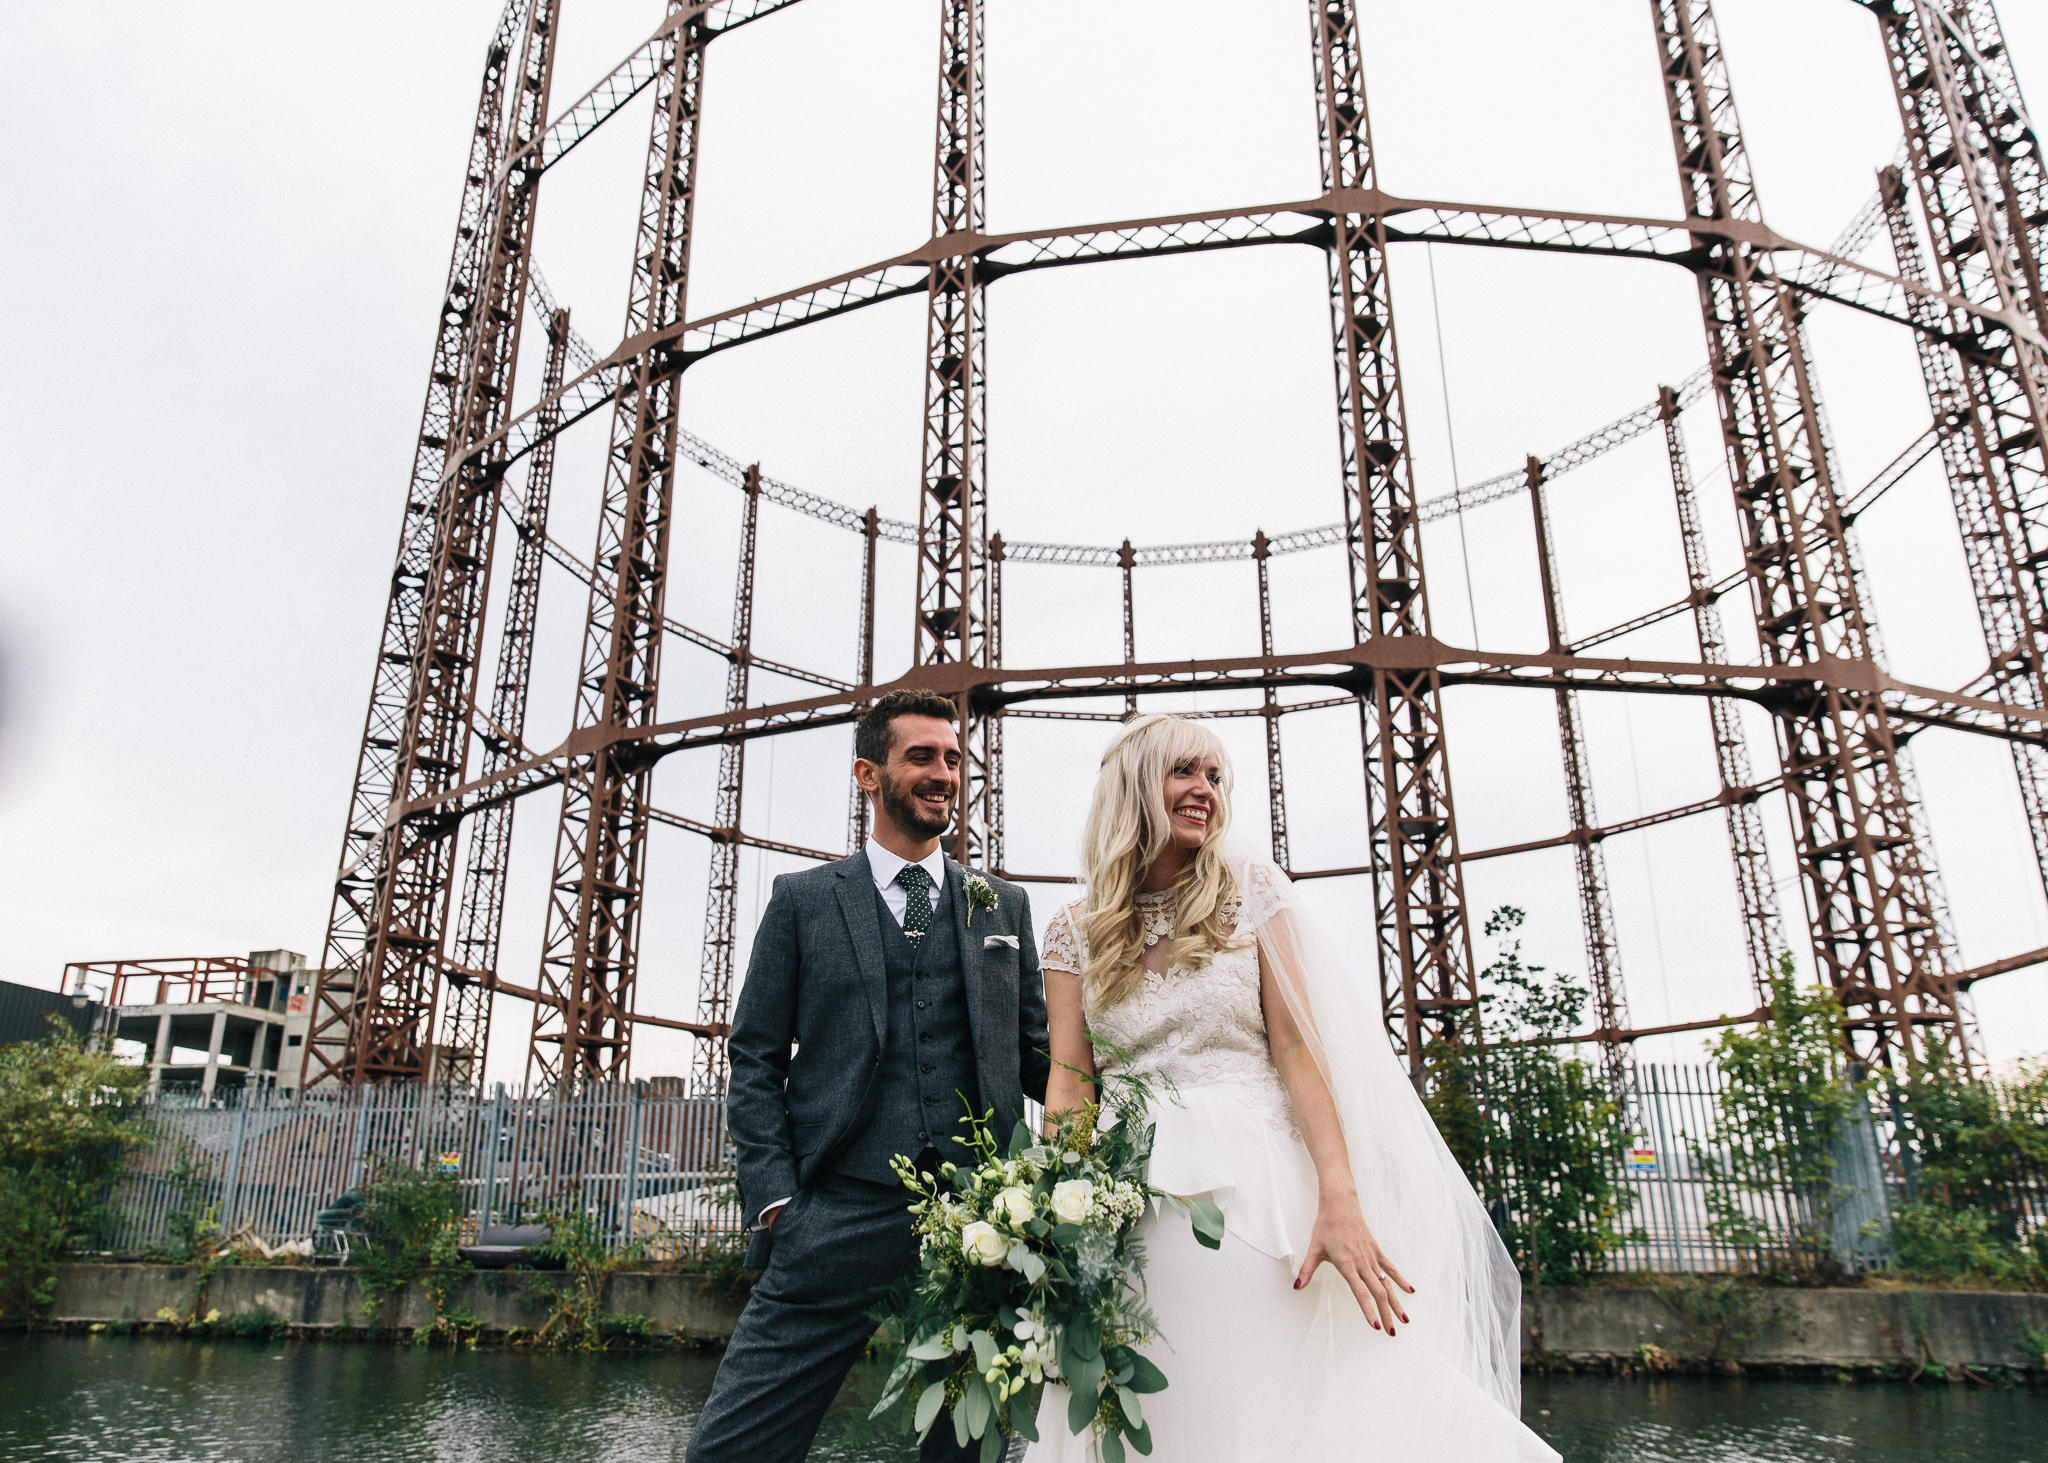 Stylish Wedding at Kachette in Urban London Planned by The Arrangers | Alice Temperley Bluebell Bridal Gown | ASOS Mint Green Lace High Low Bridesmaid Dresses | Eclection Photography